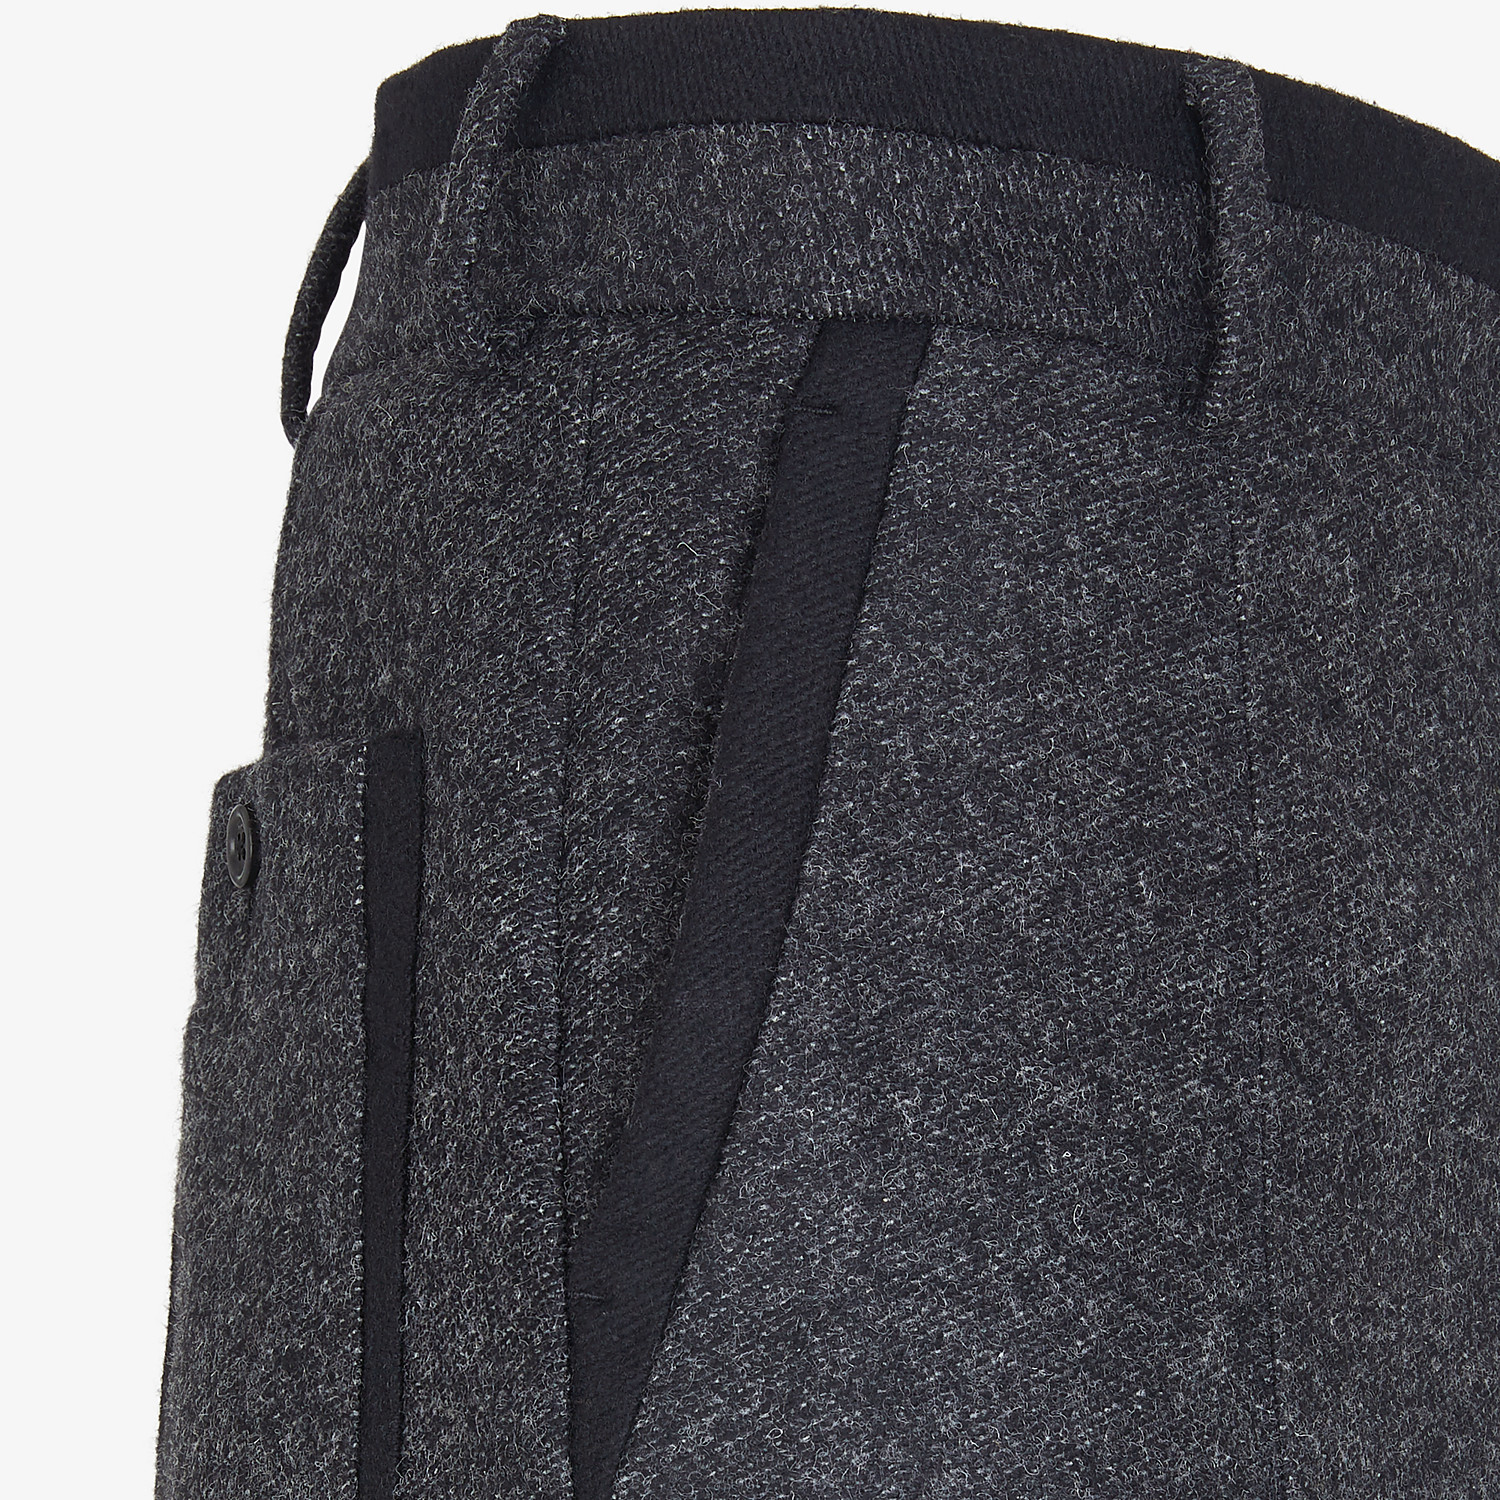 FENDI PANTS - Gray wool pants - view 3 detail